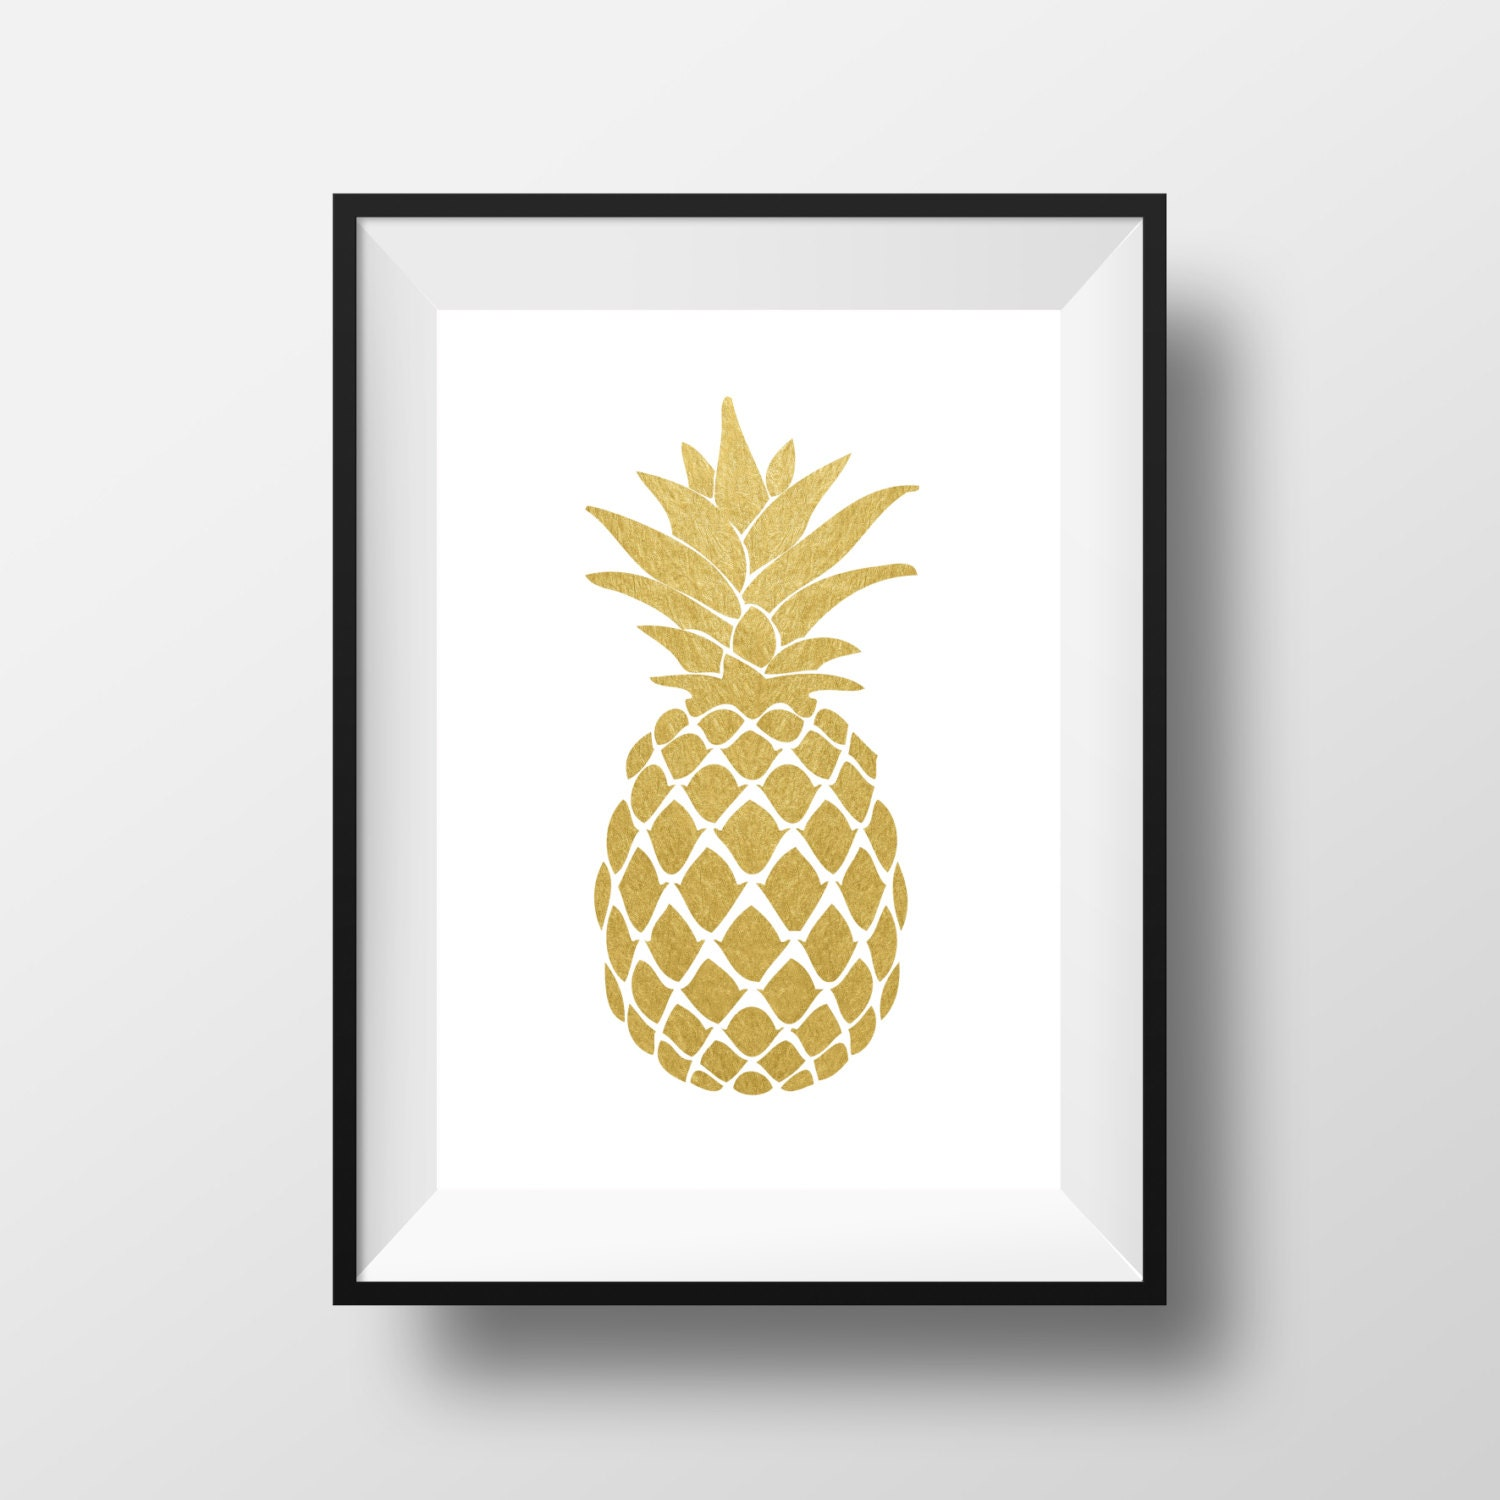 Brilliant 50+ Pineapple Wall Decor Design Inspiration Of Best ...